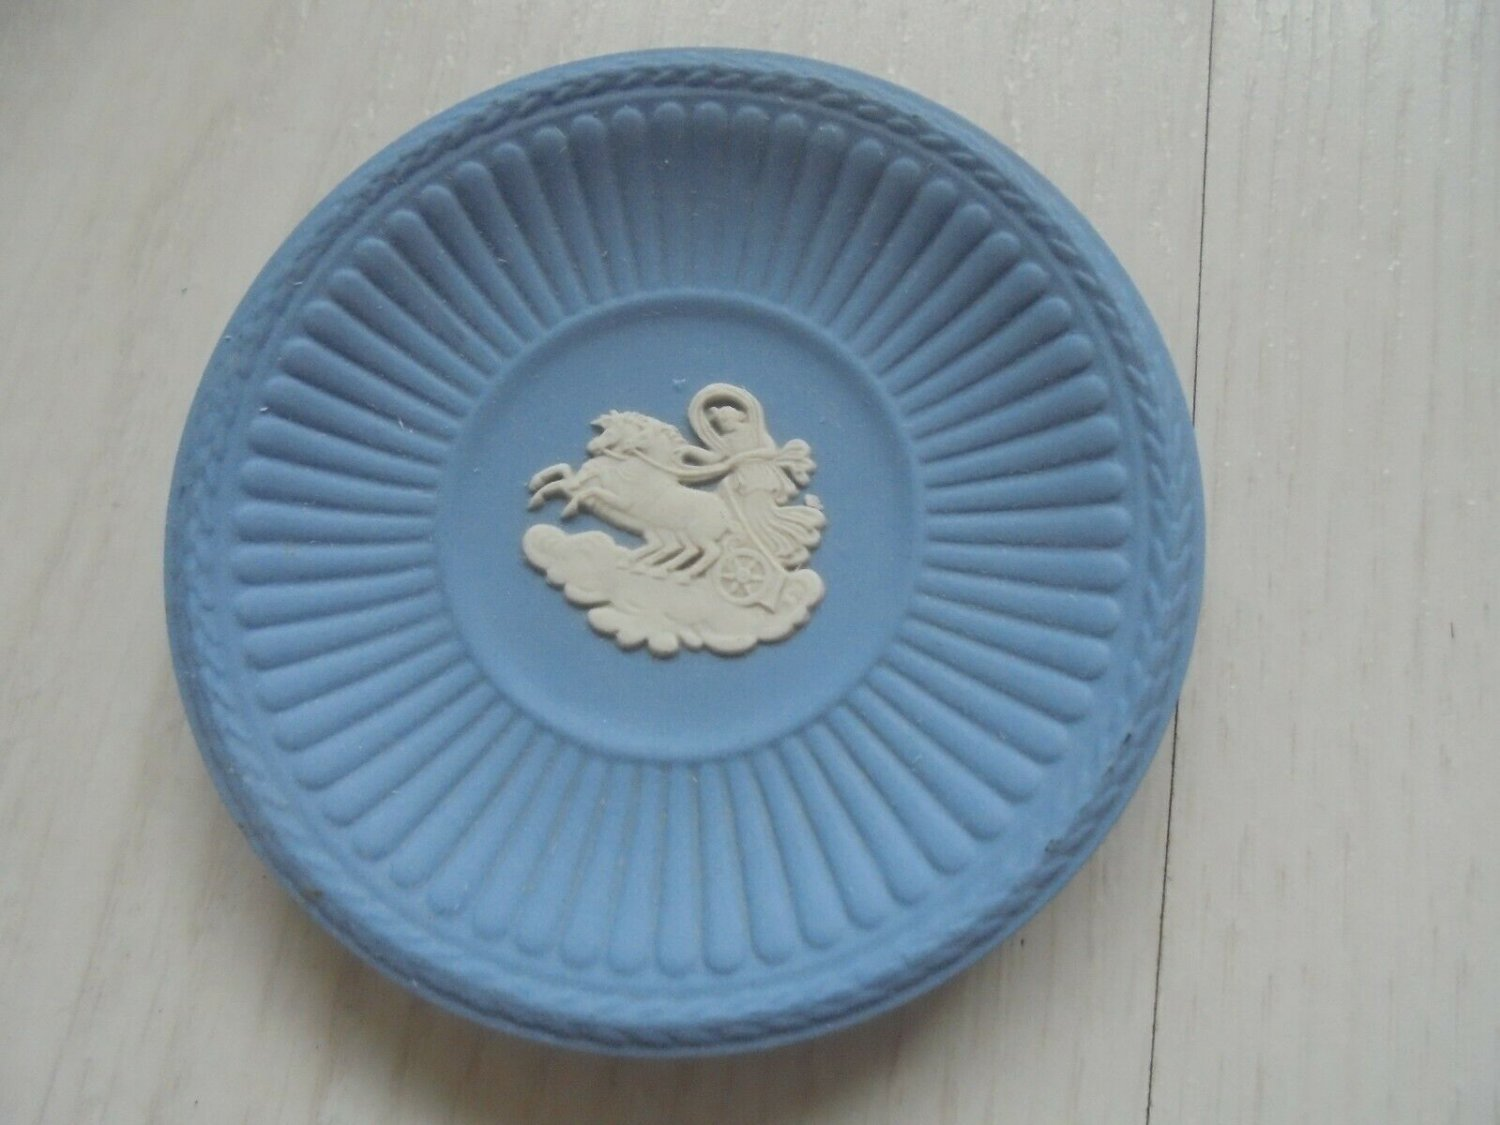 WEDGWOOD PLATE in CERAMIC Blue cobalt color with horses Original